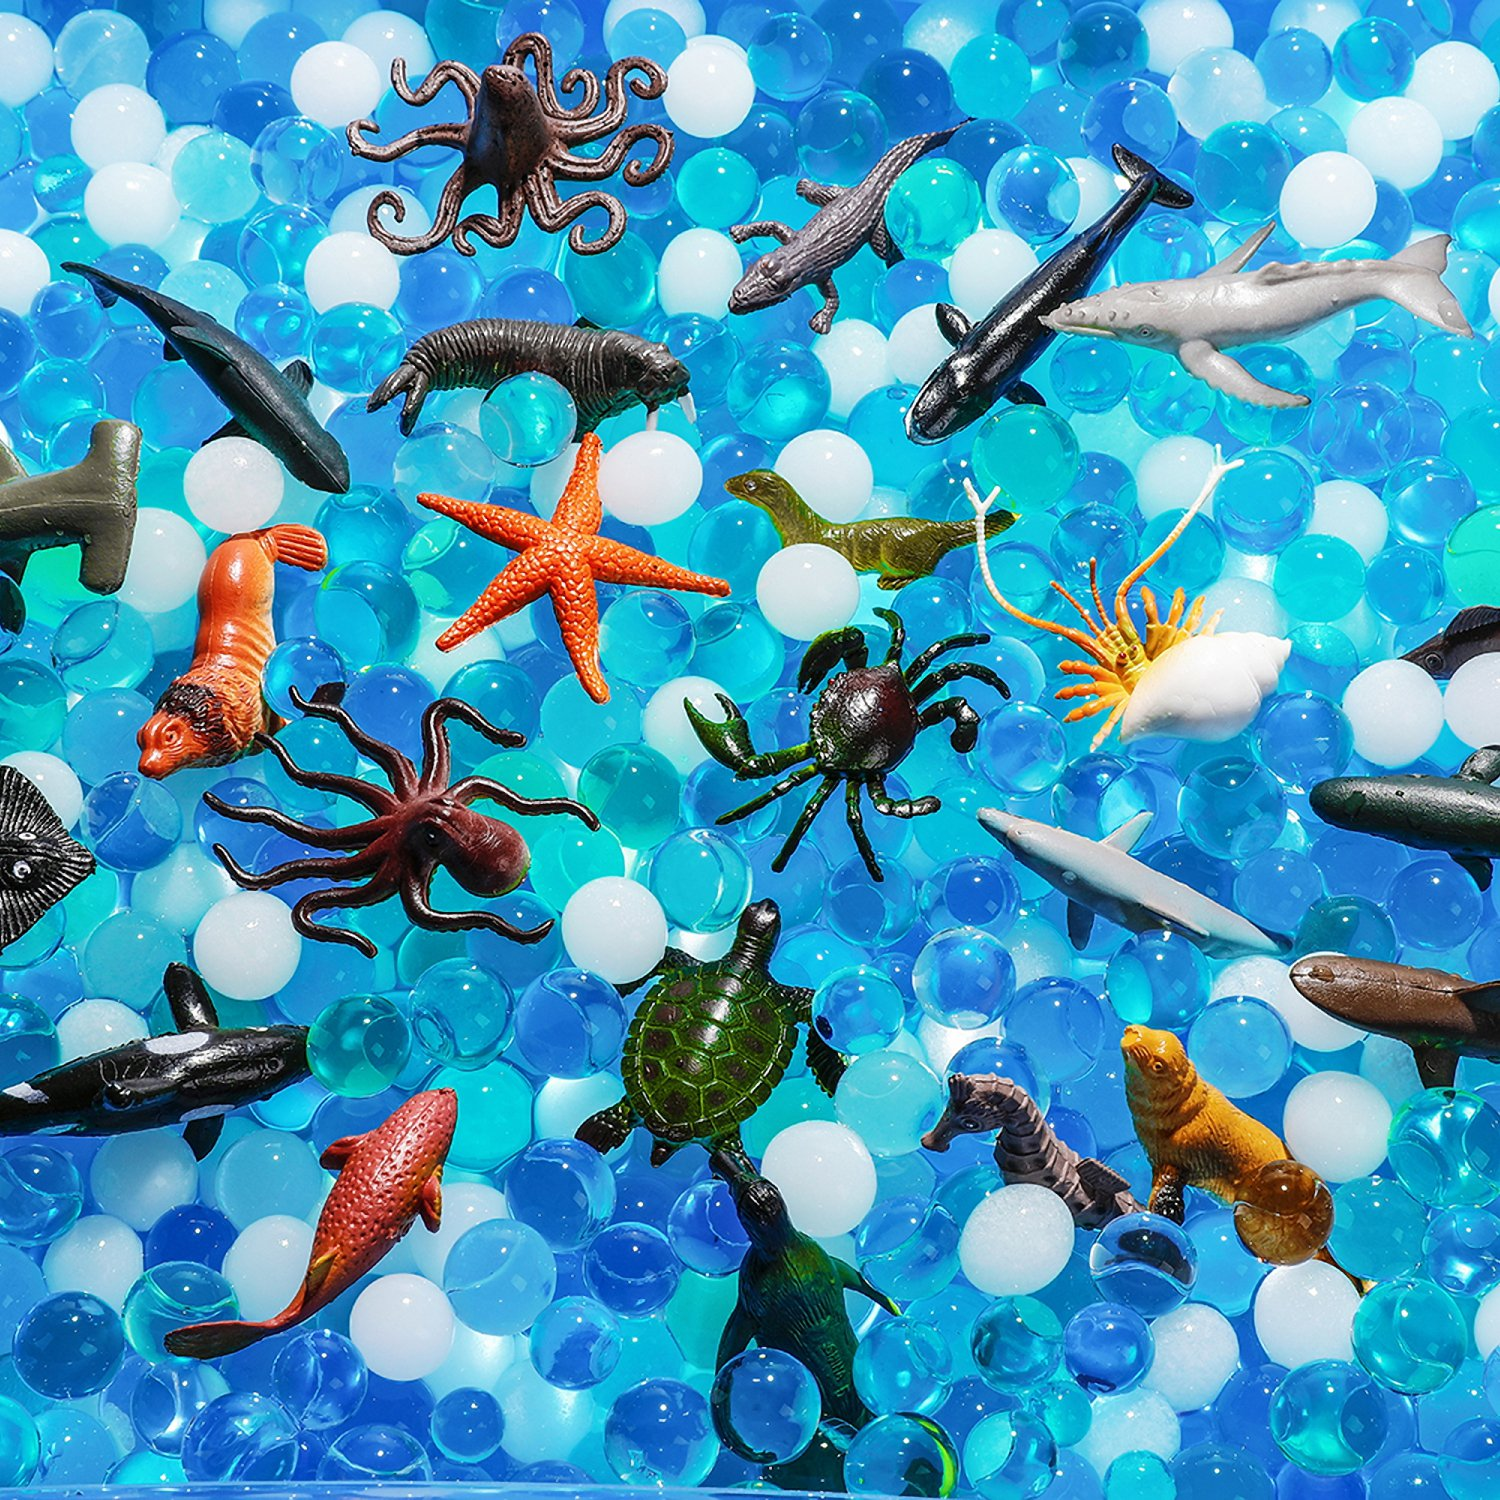 MONILON Water Beads, 24 Pcs Ocean Sea Animals Tactile Sensory Play Kids Toys Boys Girls, Water Gel Soft Beads Growing Jelly Balls Orbeez Spa Refill, Pool Decor-Inflatable Water Mat Include